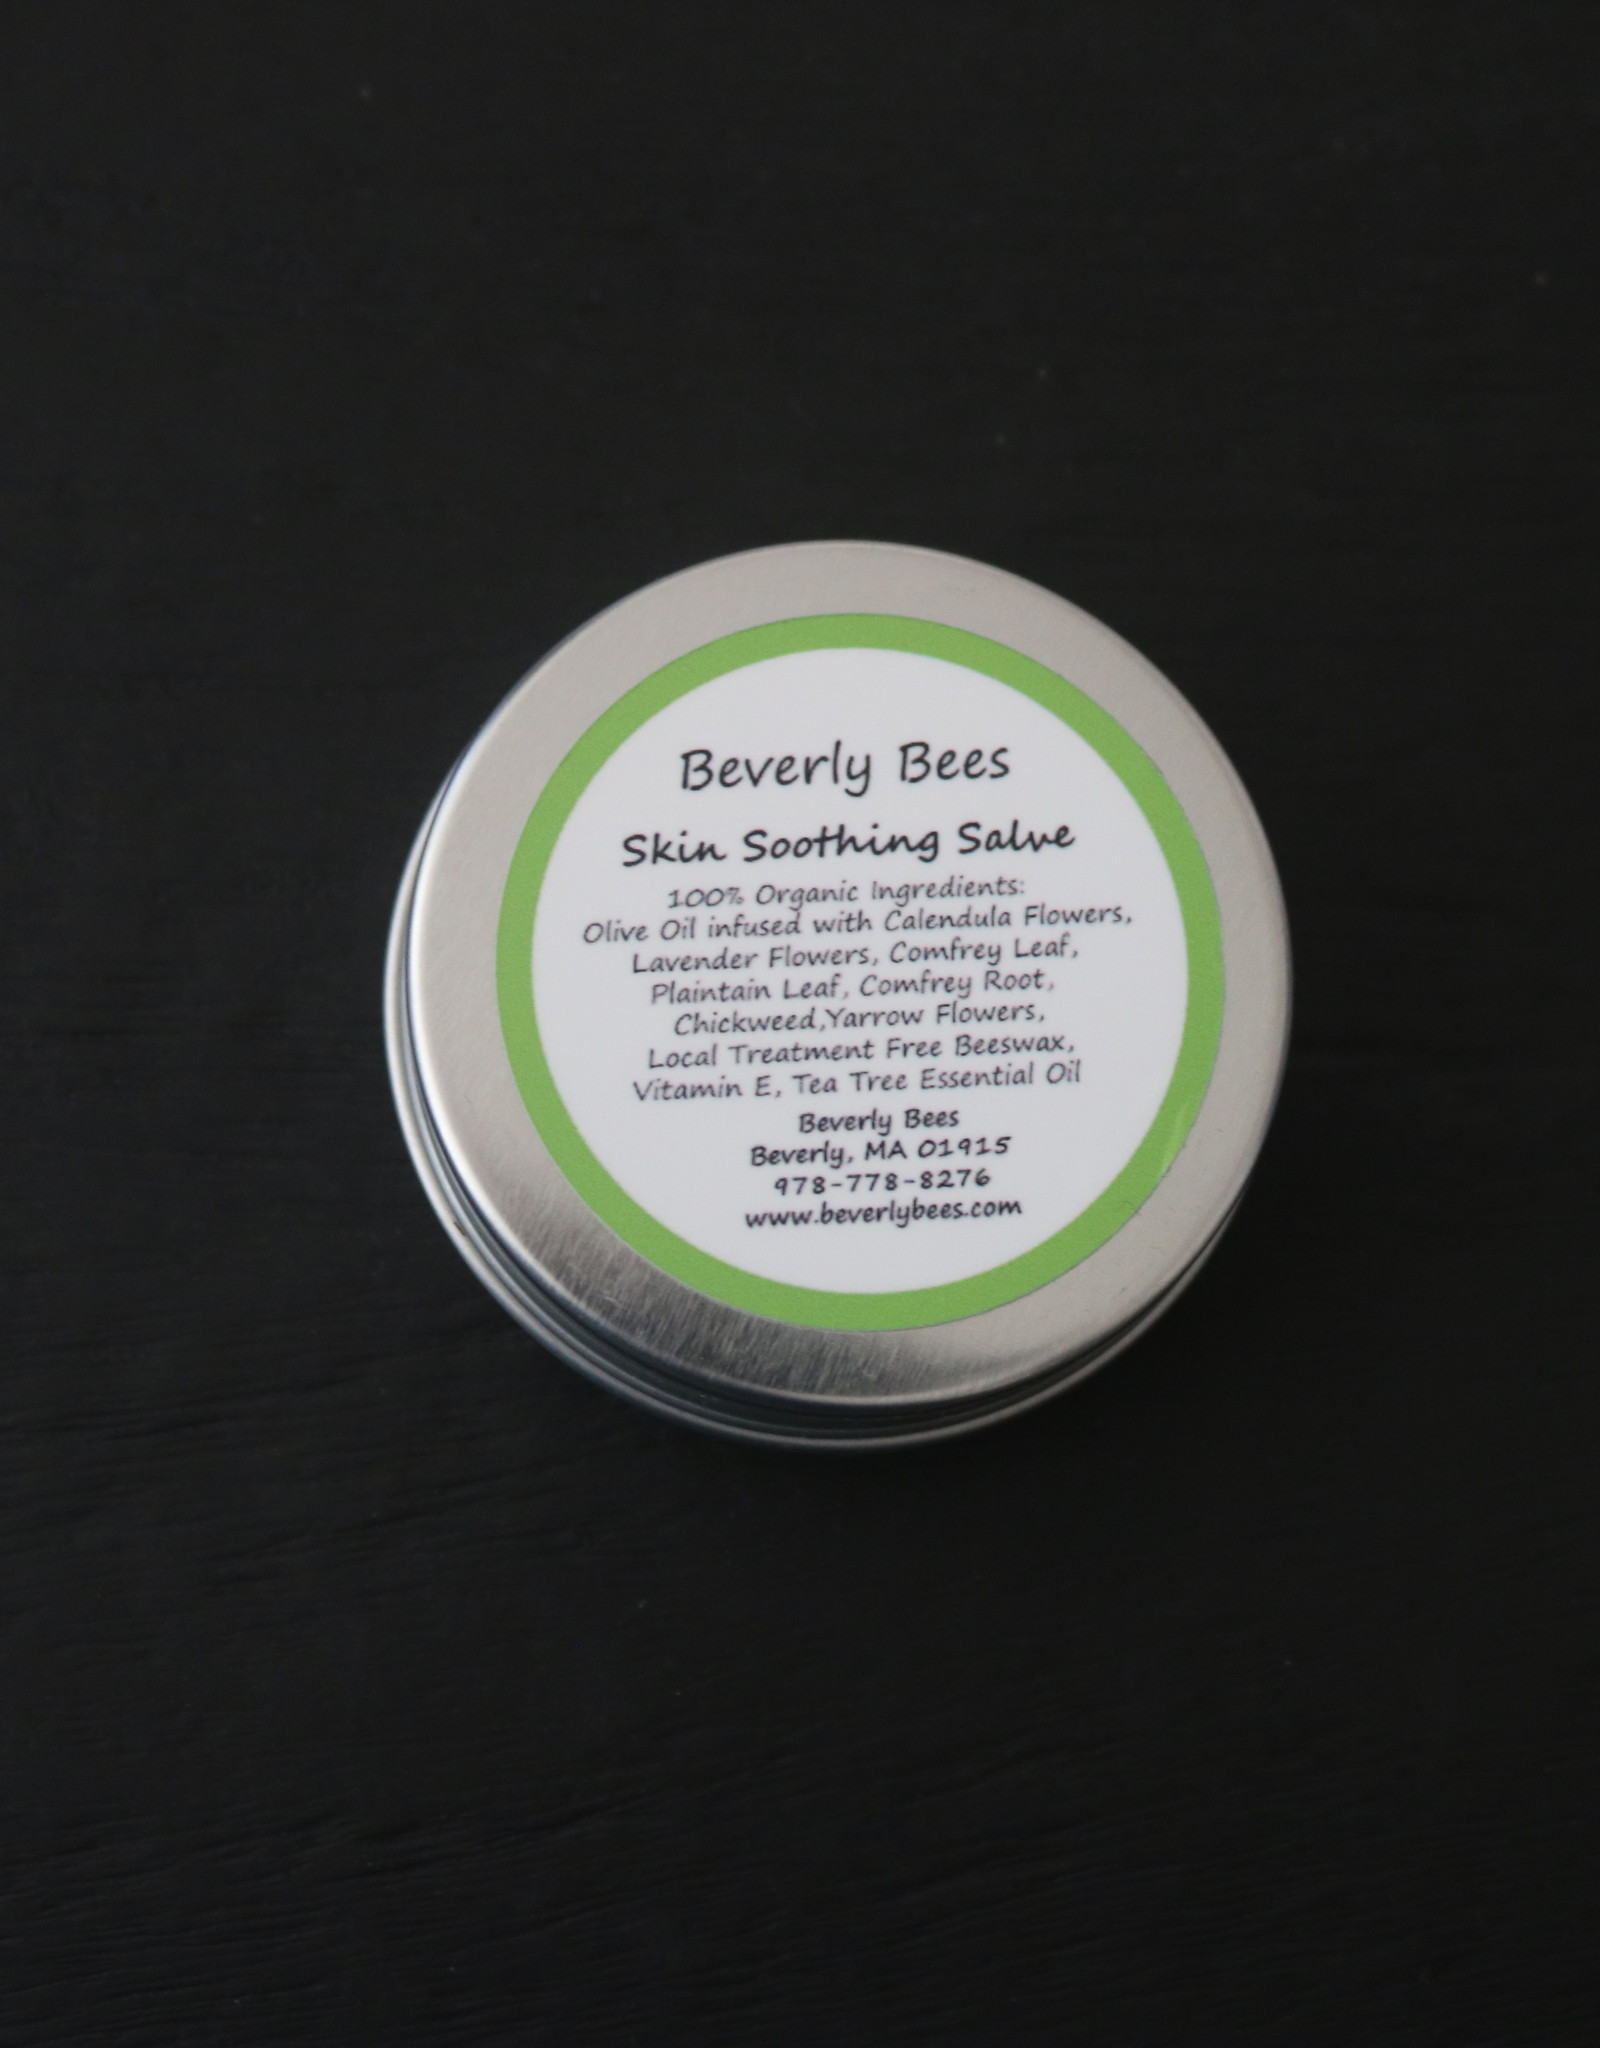 Beverly Bees Organic Skin Soothing Salve